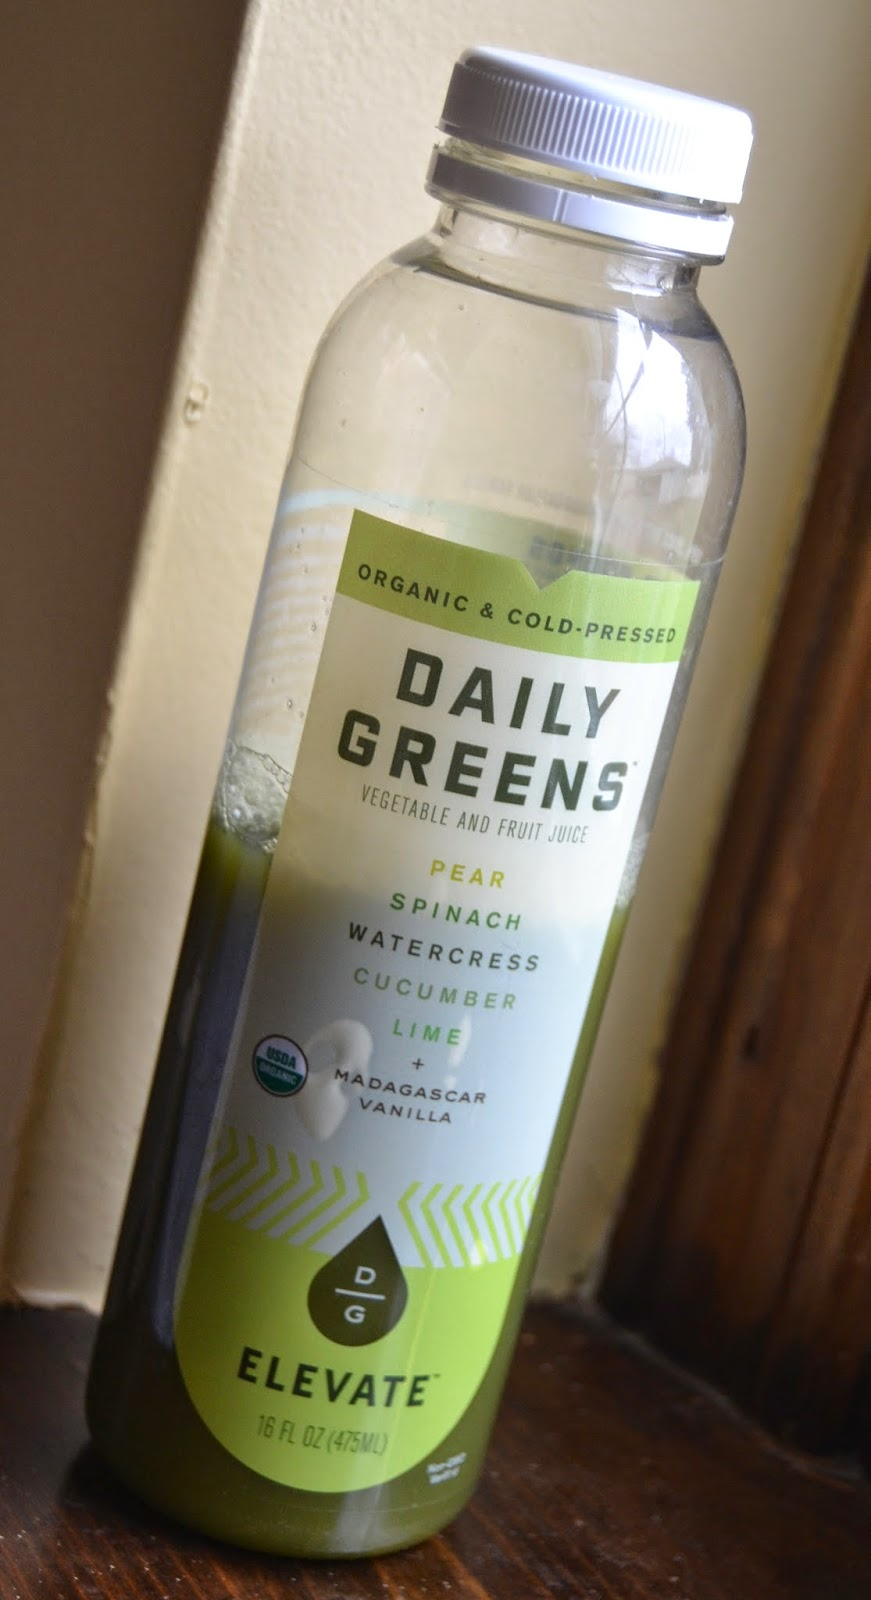 Daily Greens juices